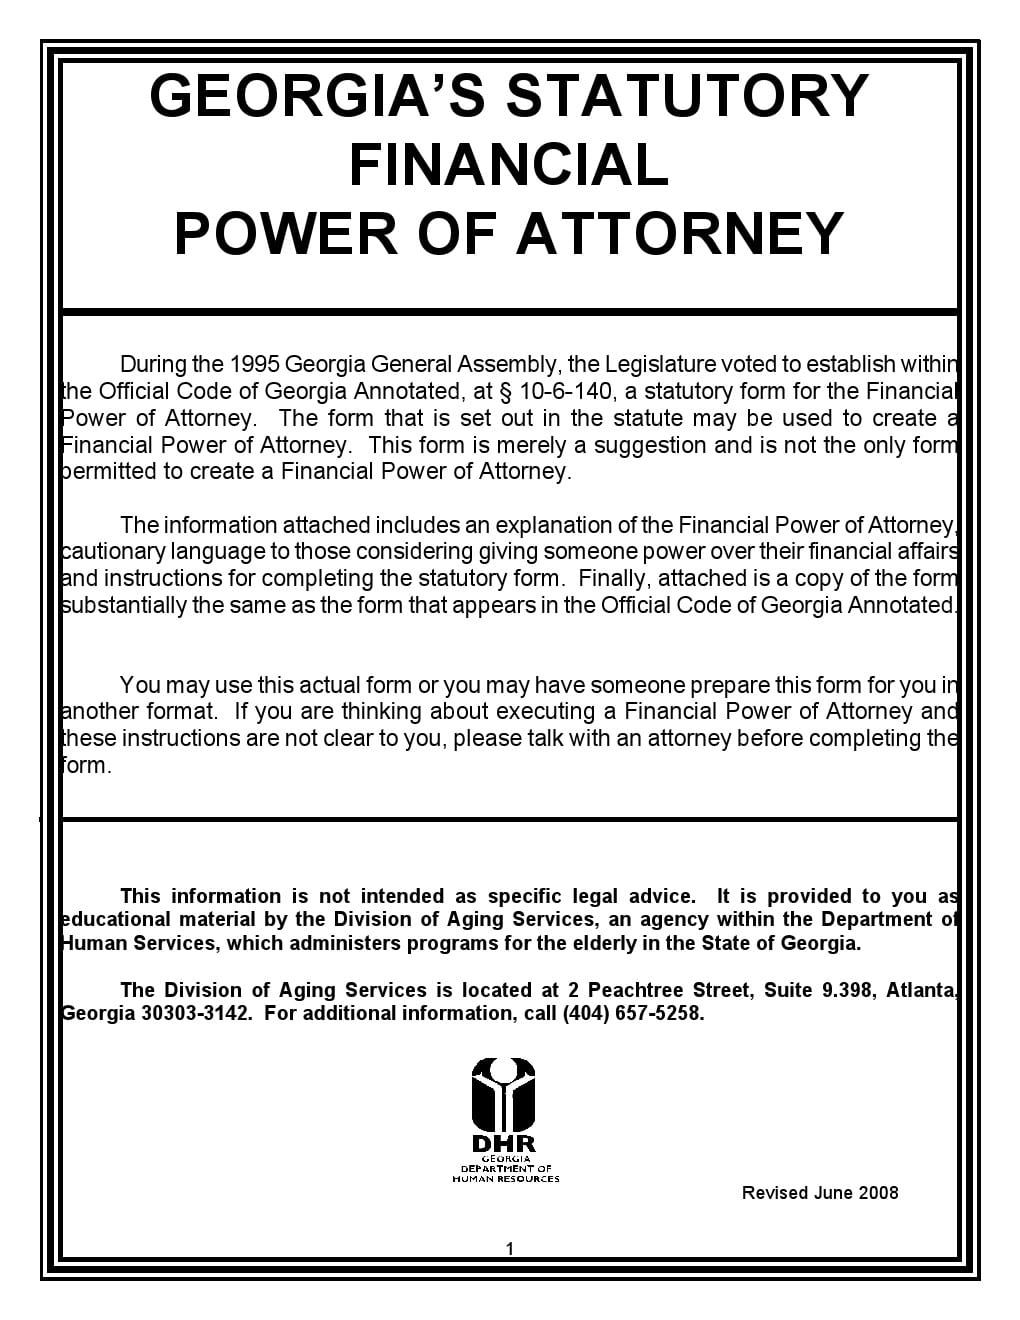 Statutory Fiancial Power of Attorney Georgia